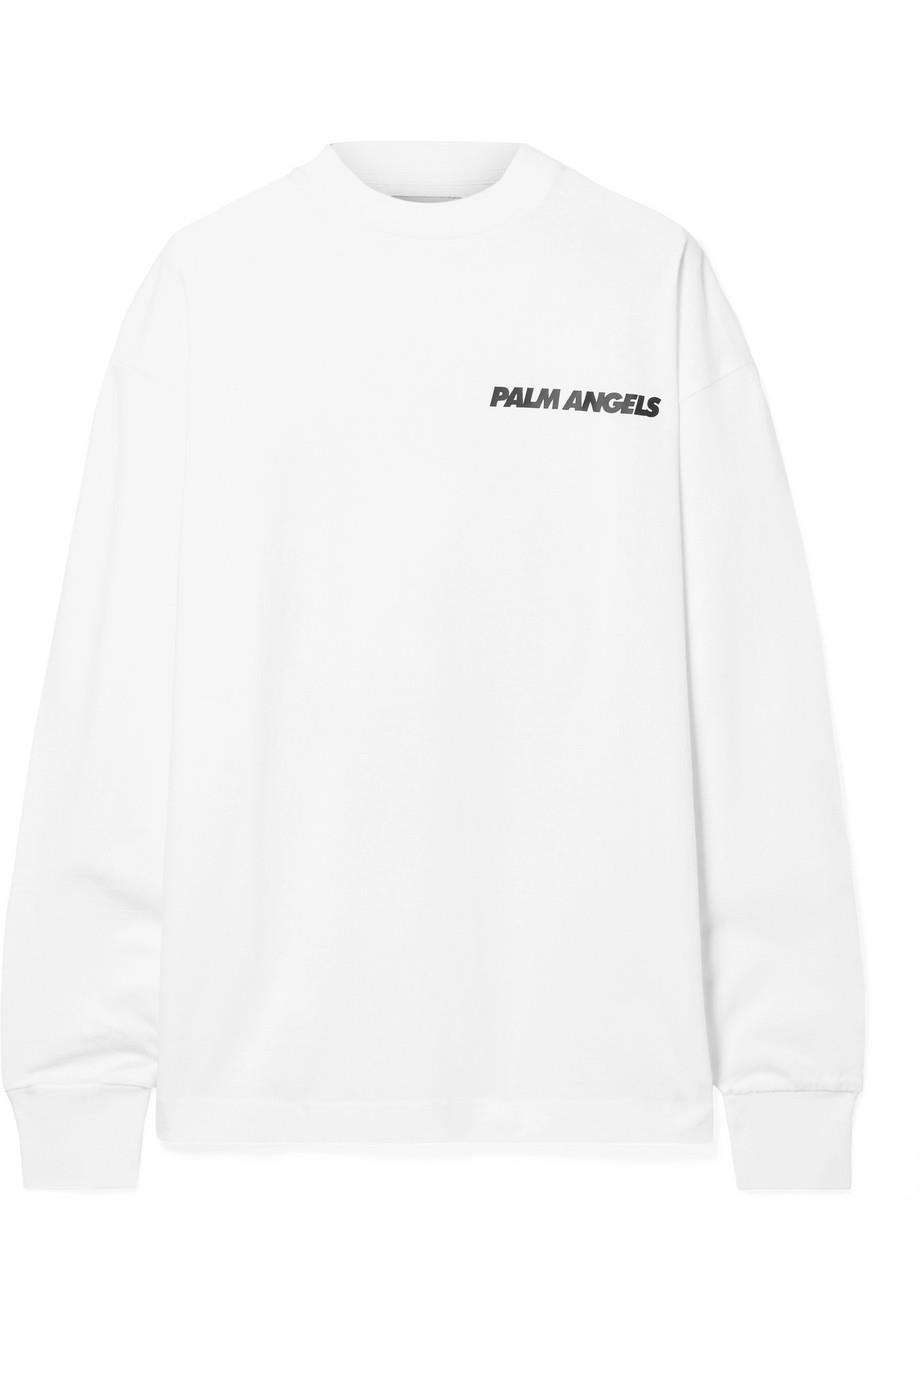 PALM ANGELS OVERSIZED PRINTED COTTON JERSEY TOP LARGE